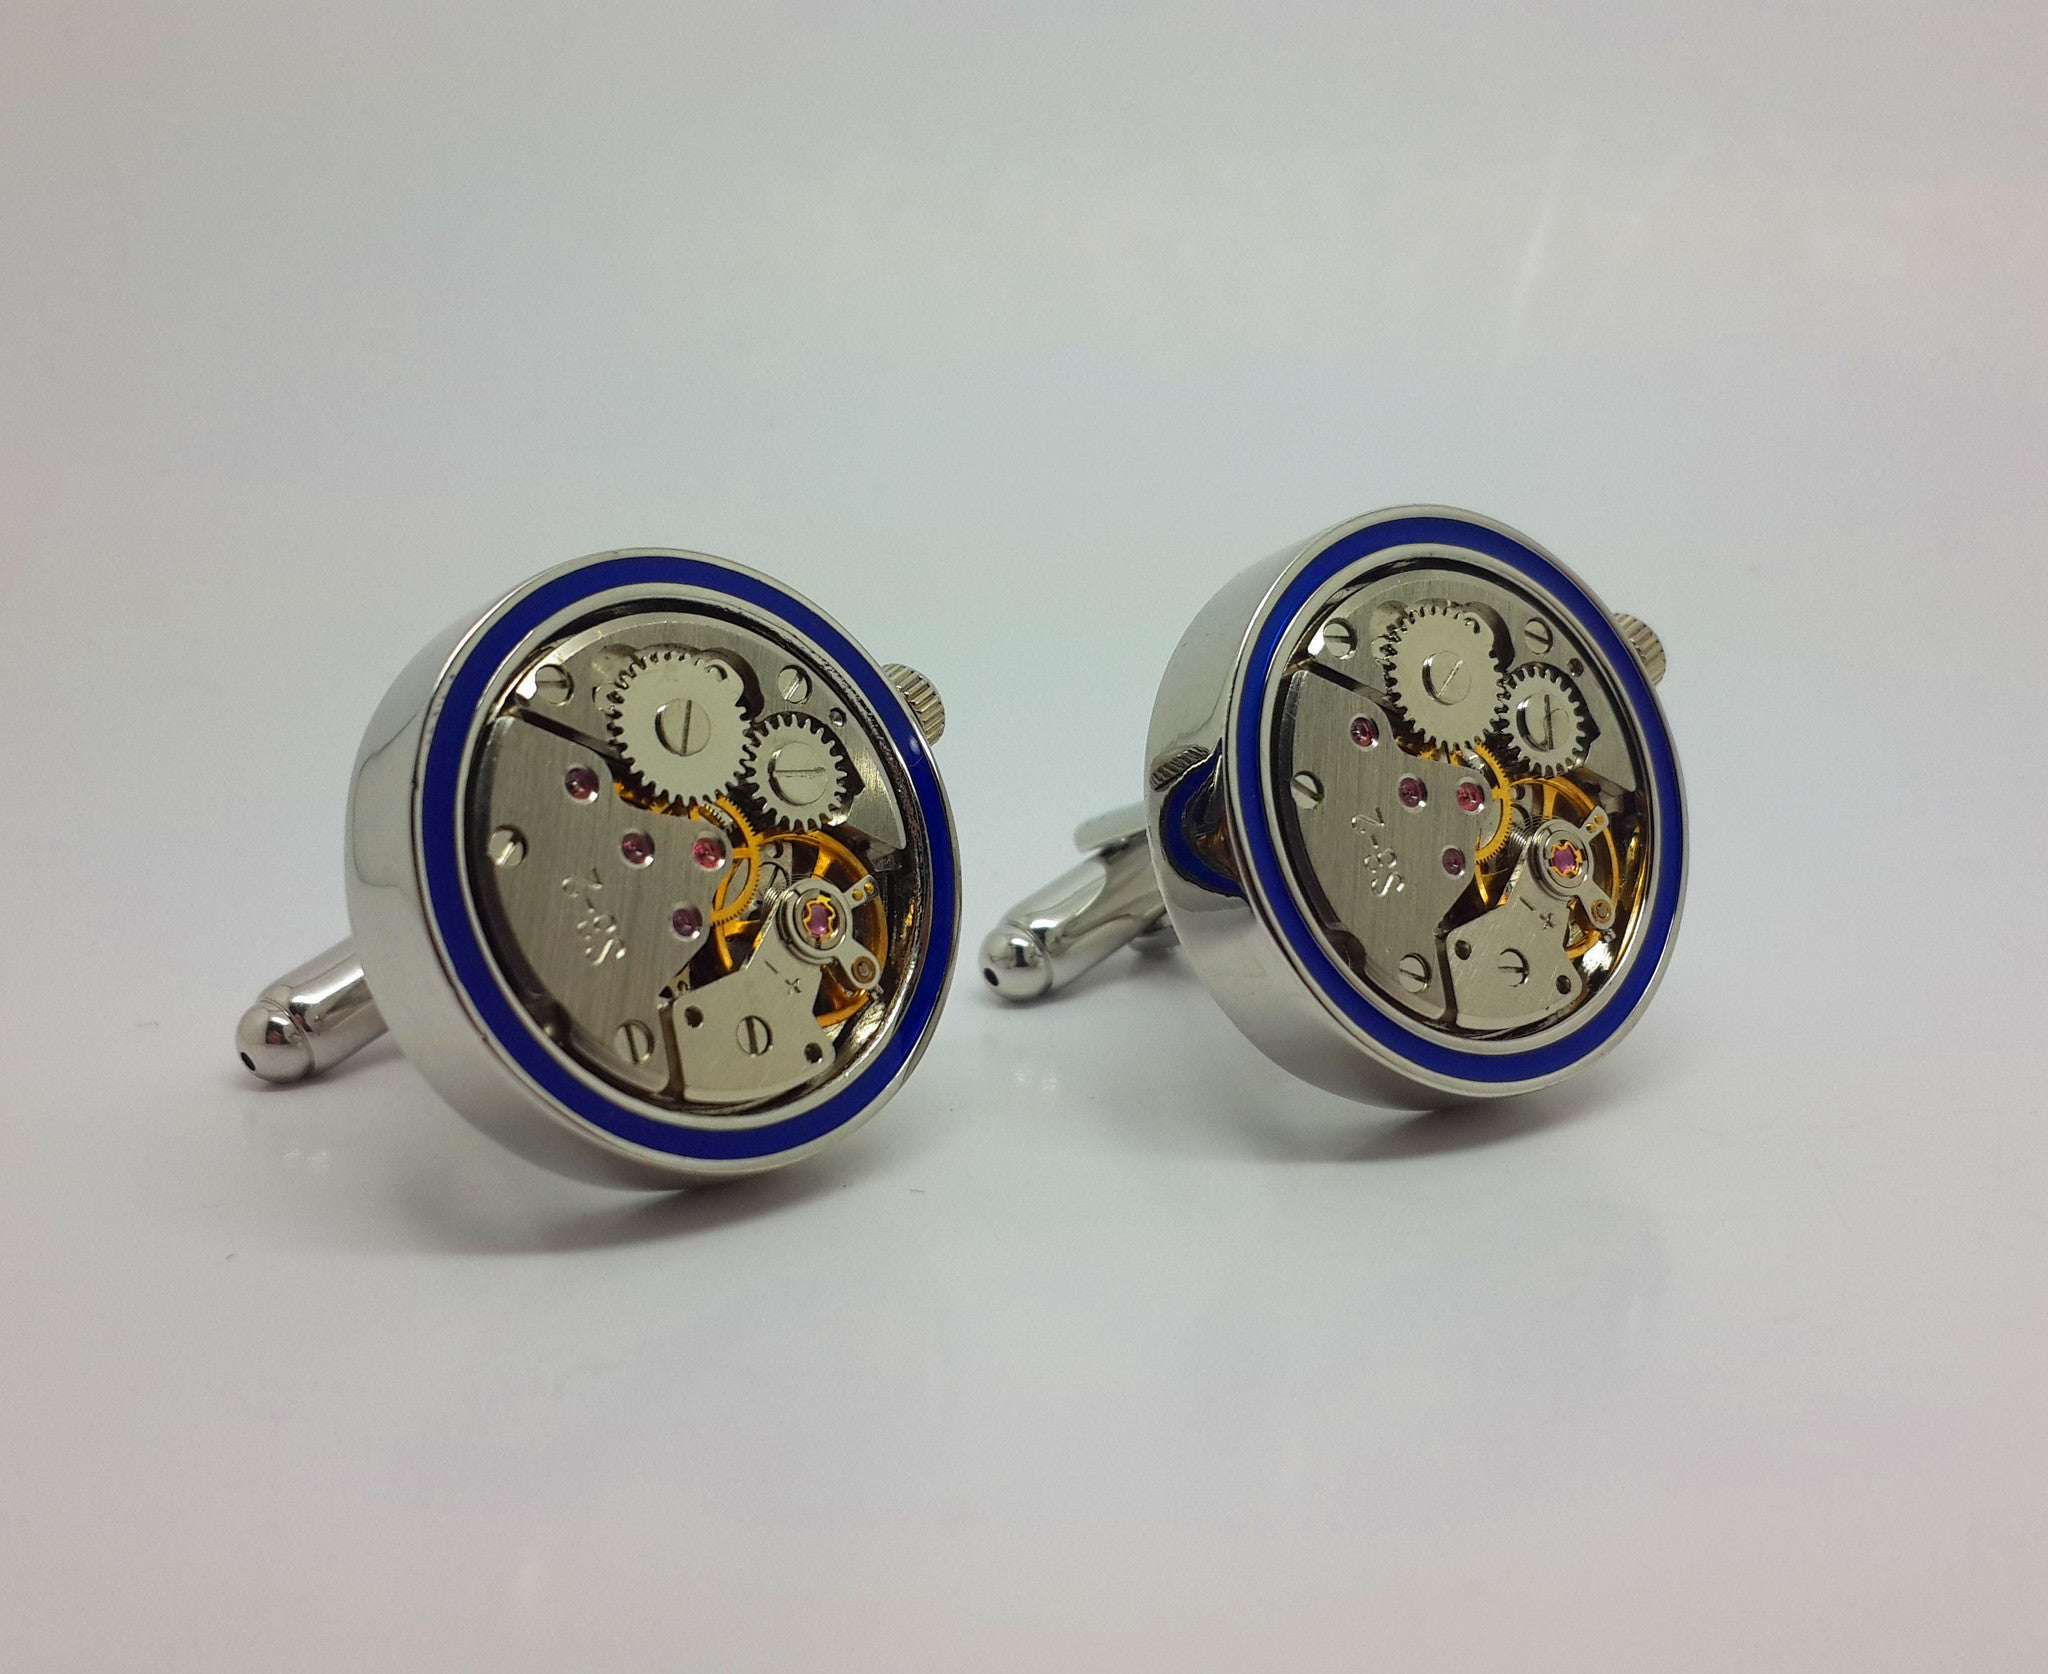 Clockwork Cufflinks With Real Moving Parts Blue Rim